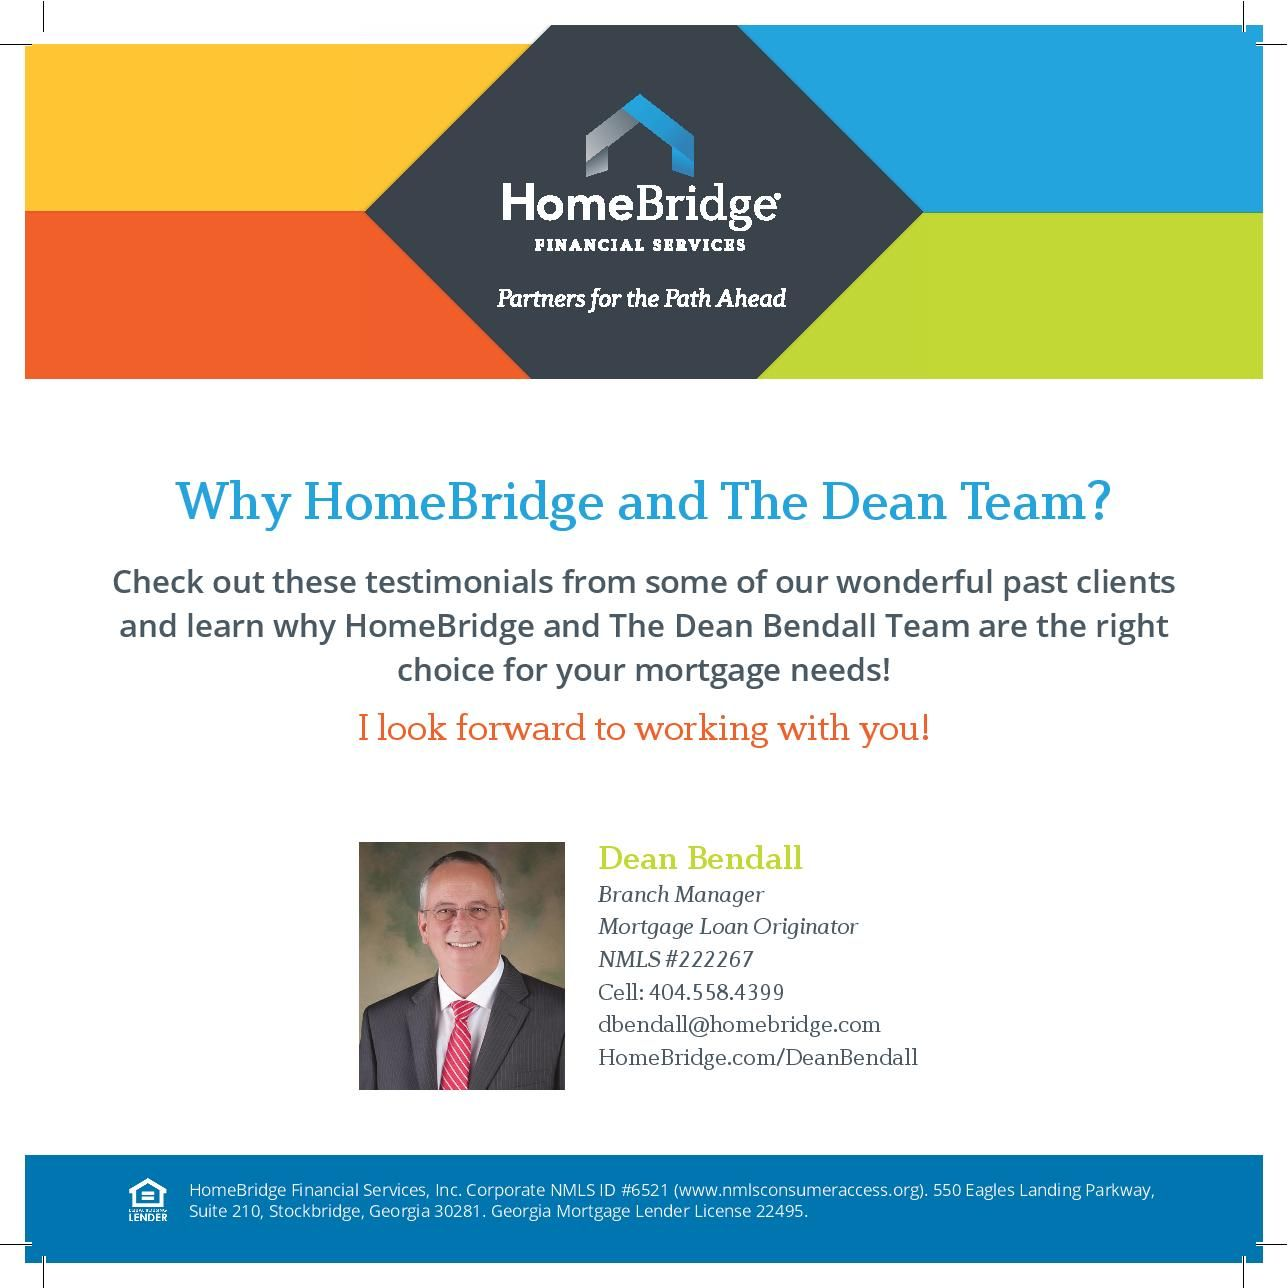 Dean Bendall, Mortgage Loan Originator, NMLS #222267